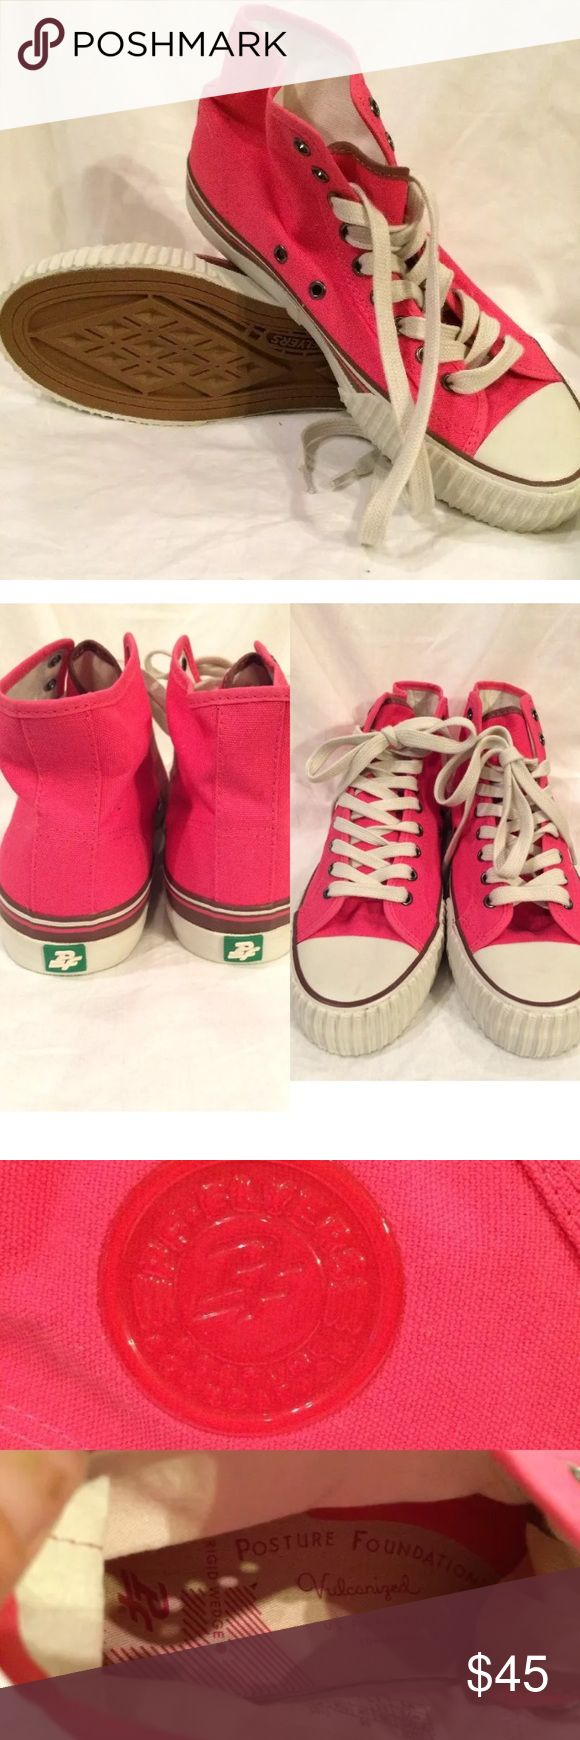 ⭐️NEW ITEM⭐️NEW PF Flyers 9.5 NEW WITHOUT BOX PF FLYERS PINK AND WHITE HIGHTOP CANVAS SNEAKERS WOMEN'S SIZE 9.5 OR MENS 8 SOLD OUT ONLINE!!! pf flyers Shoes Sneakers